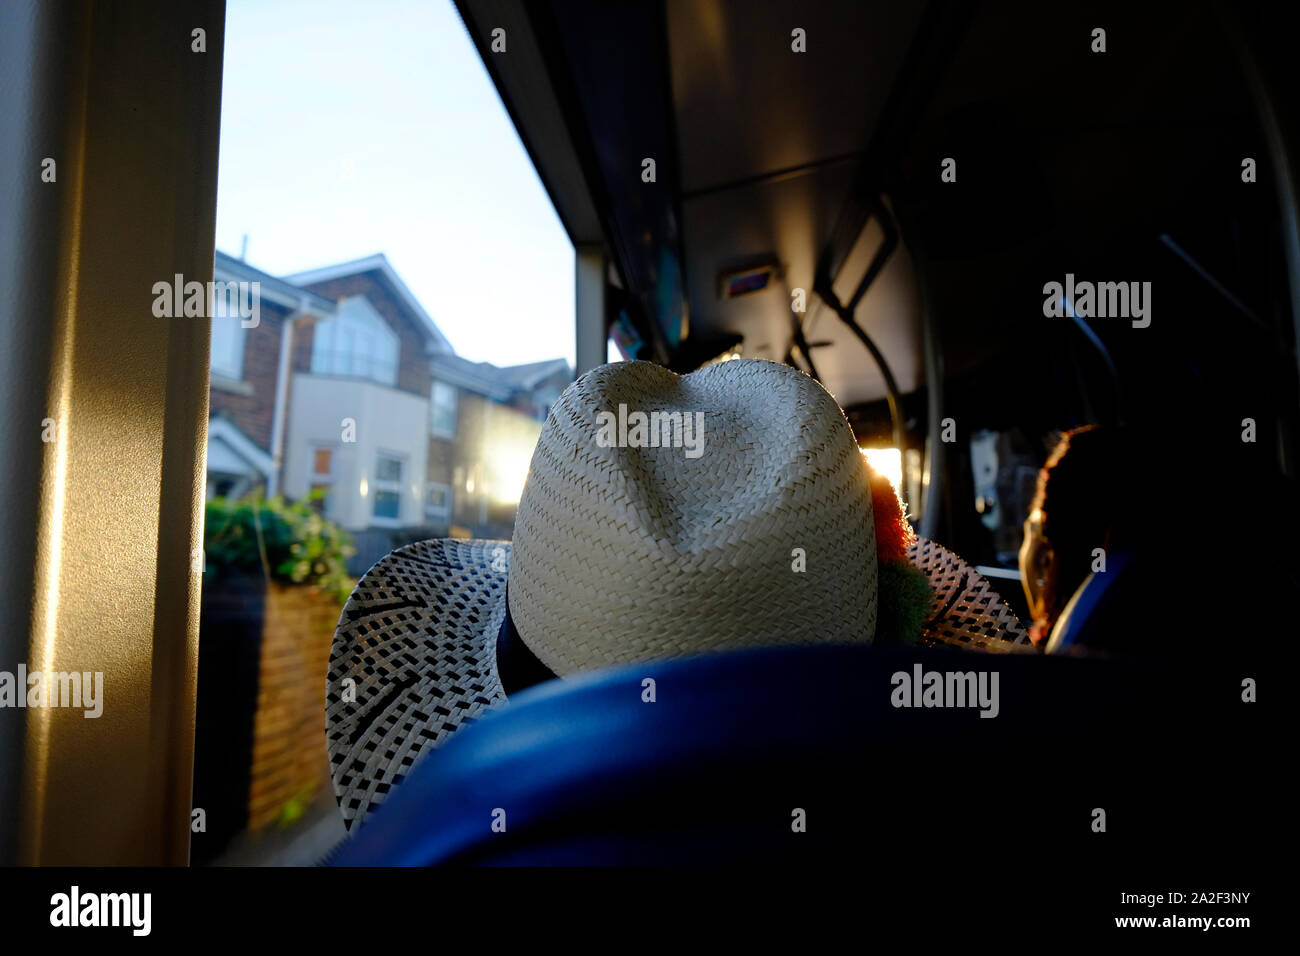 Bus passenger's view out of the window from behind a passenger wearing a stetson style straw hat Stock Photo